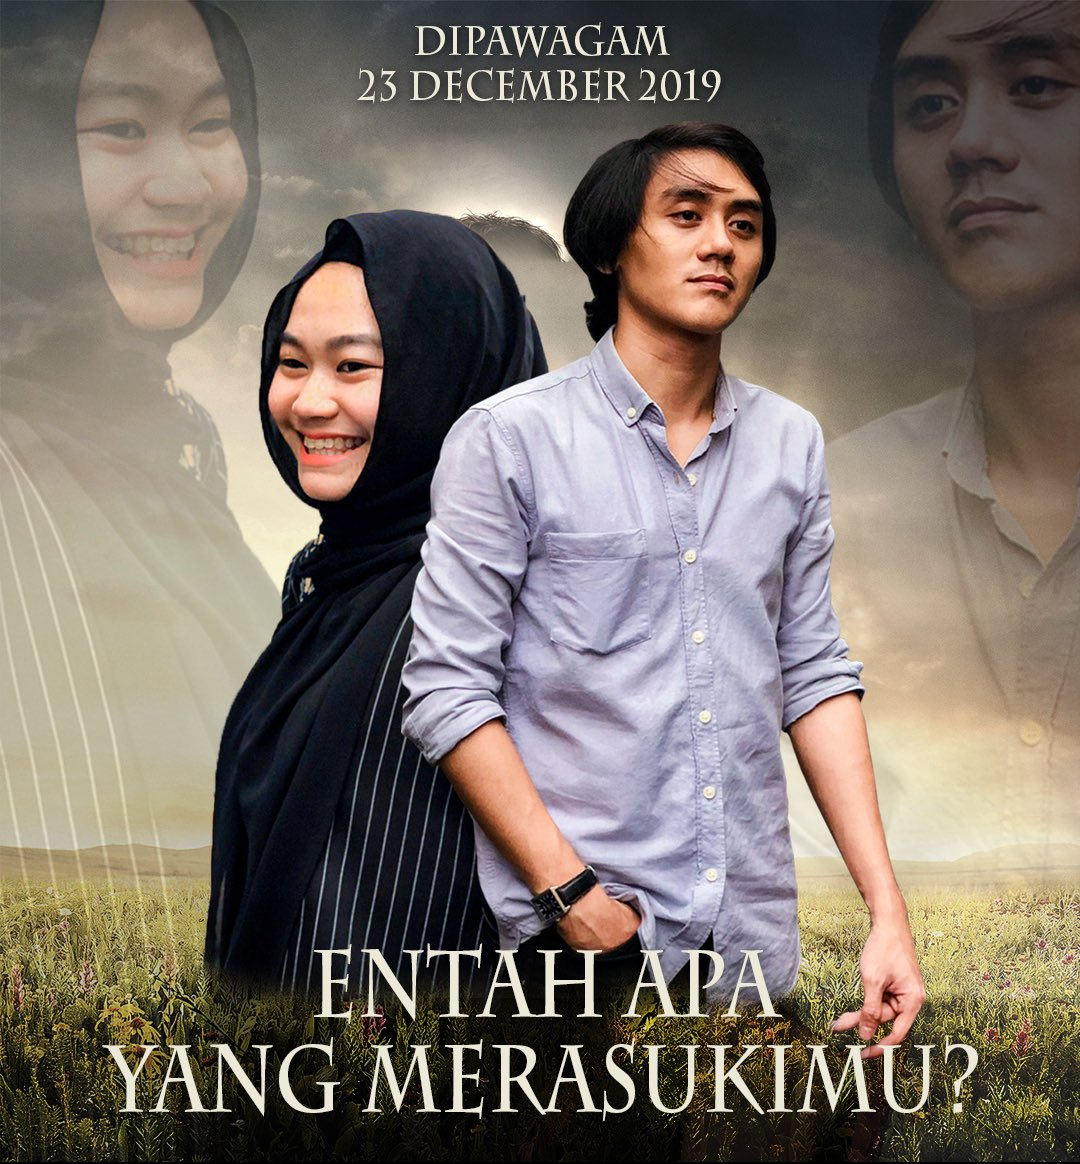 "IT'S HERE! The official movie poster ""Entah Apa Yang Merasukimu?""!  Streaming FREE December 23rd on  https:// bit.ly/32bClS9     <br>http://pic.twitter.com/DN4waPzq4p"